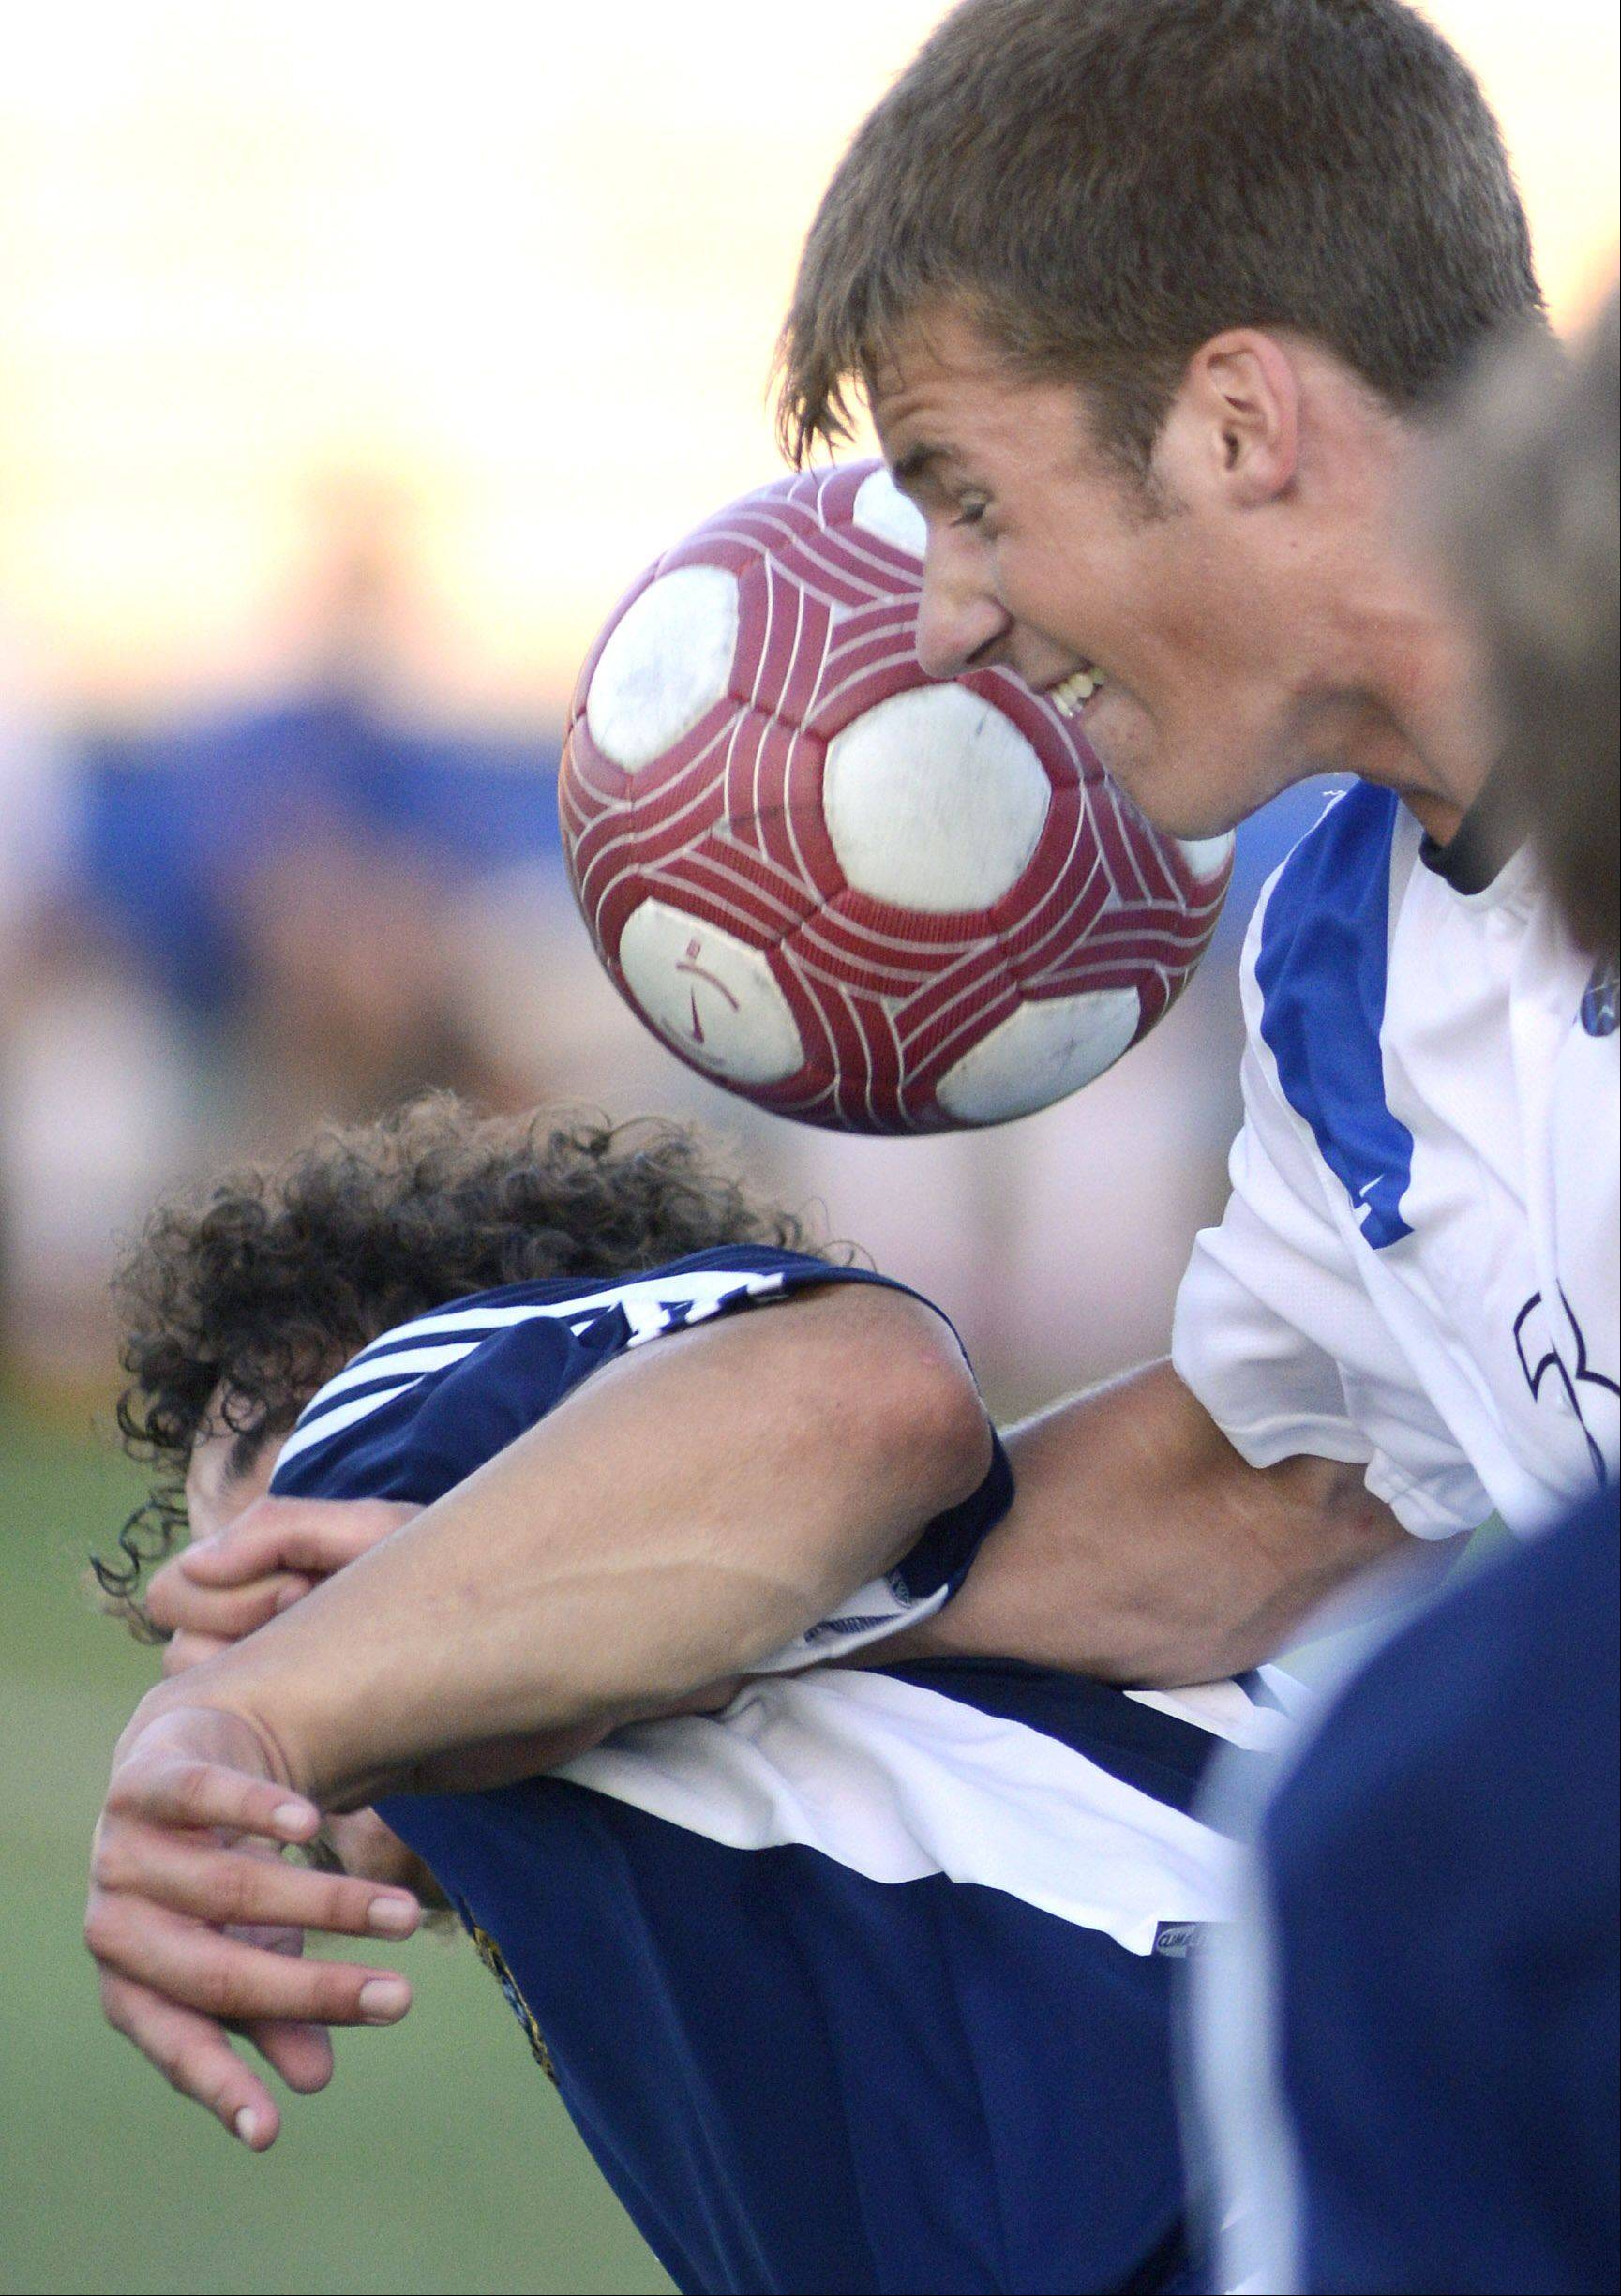 Neuqua Valley's Kersey Dickerson and St. Charles North's Adam Hoffman collide while fighting for the ball during Tuesday's soccer game.